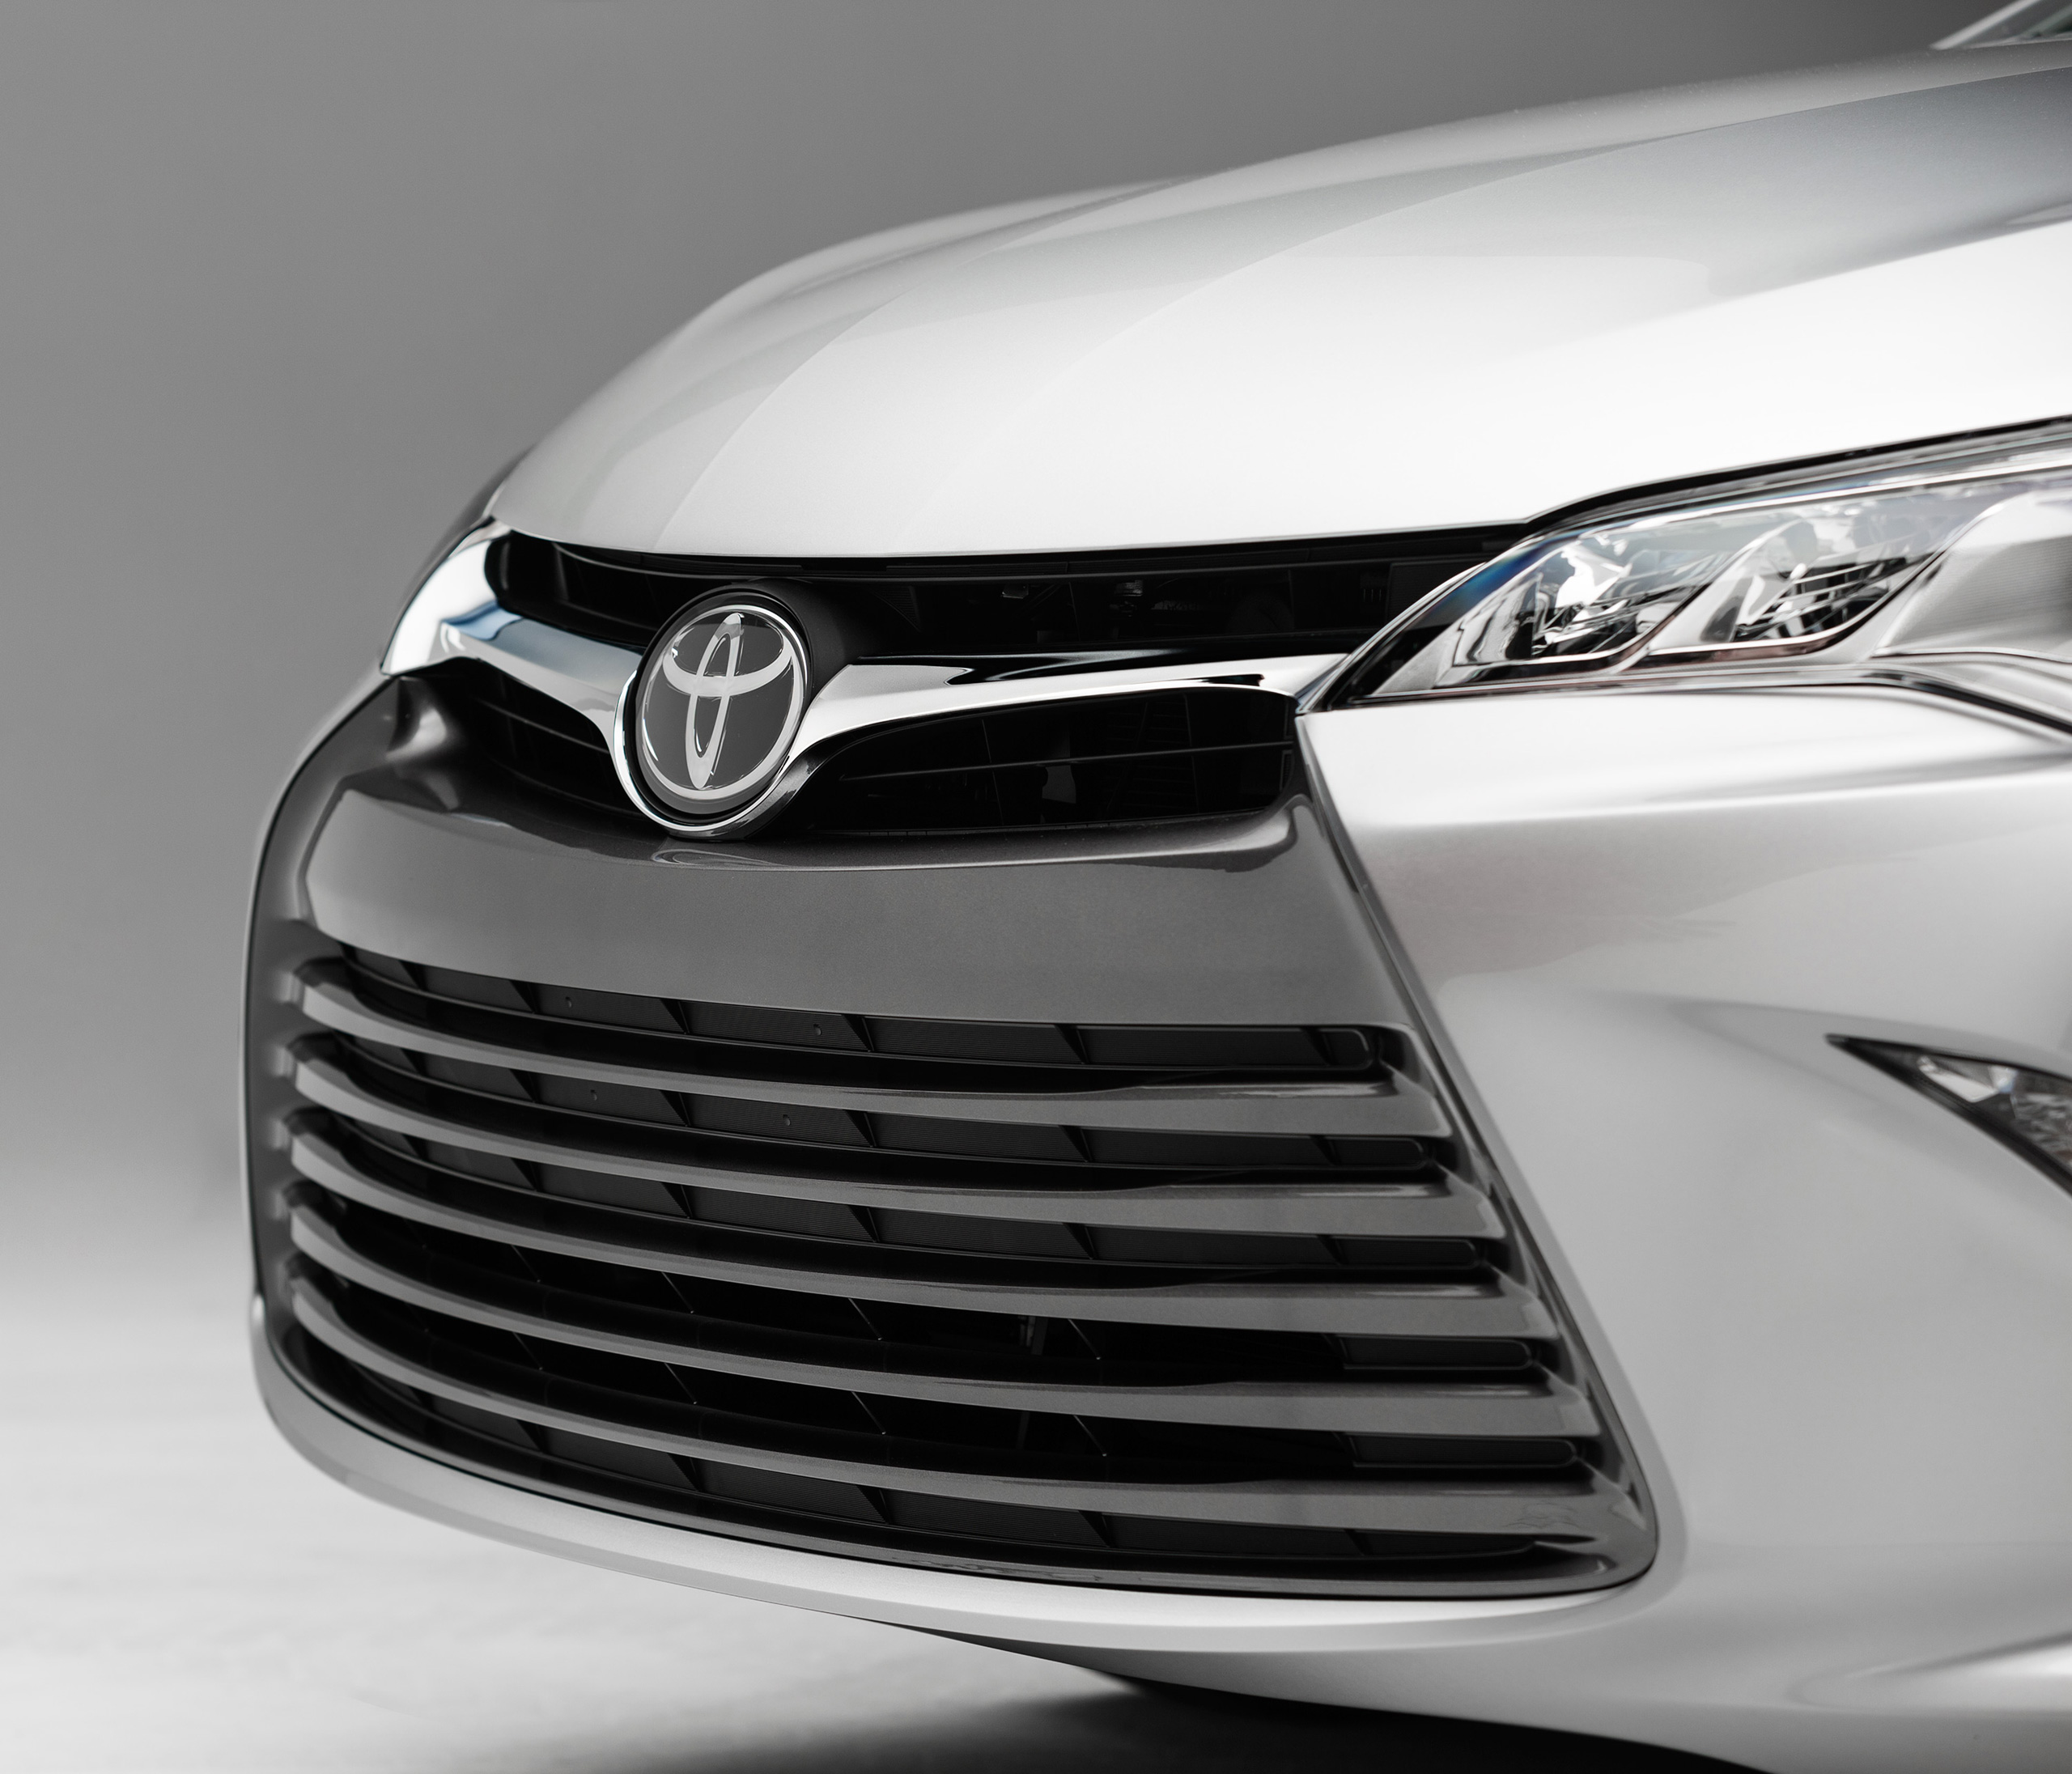 New Toyota Camry >> 2015 Toyota Camry – major facelift unveiled in NYC Paul Tan - Image 241696